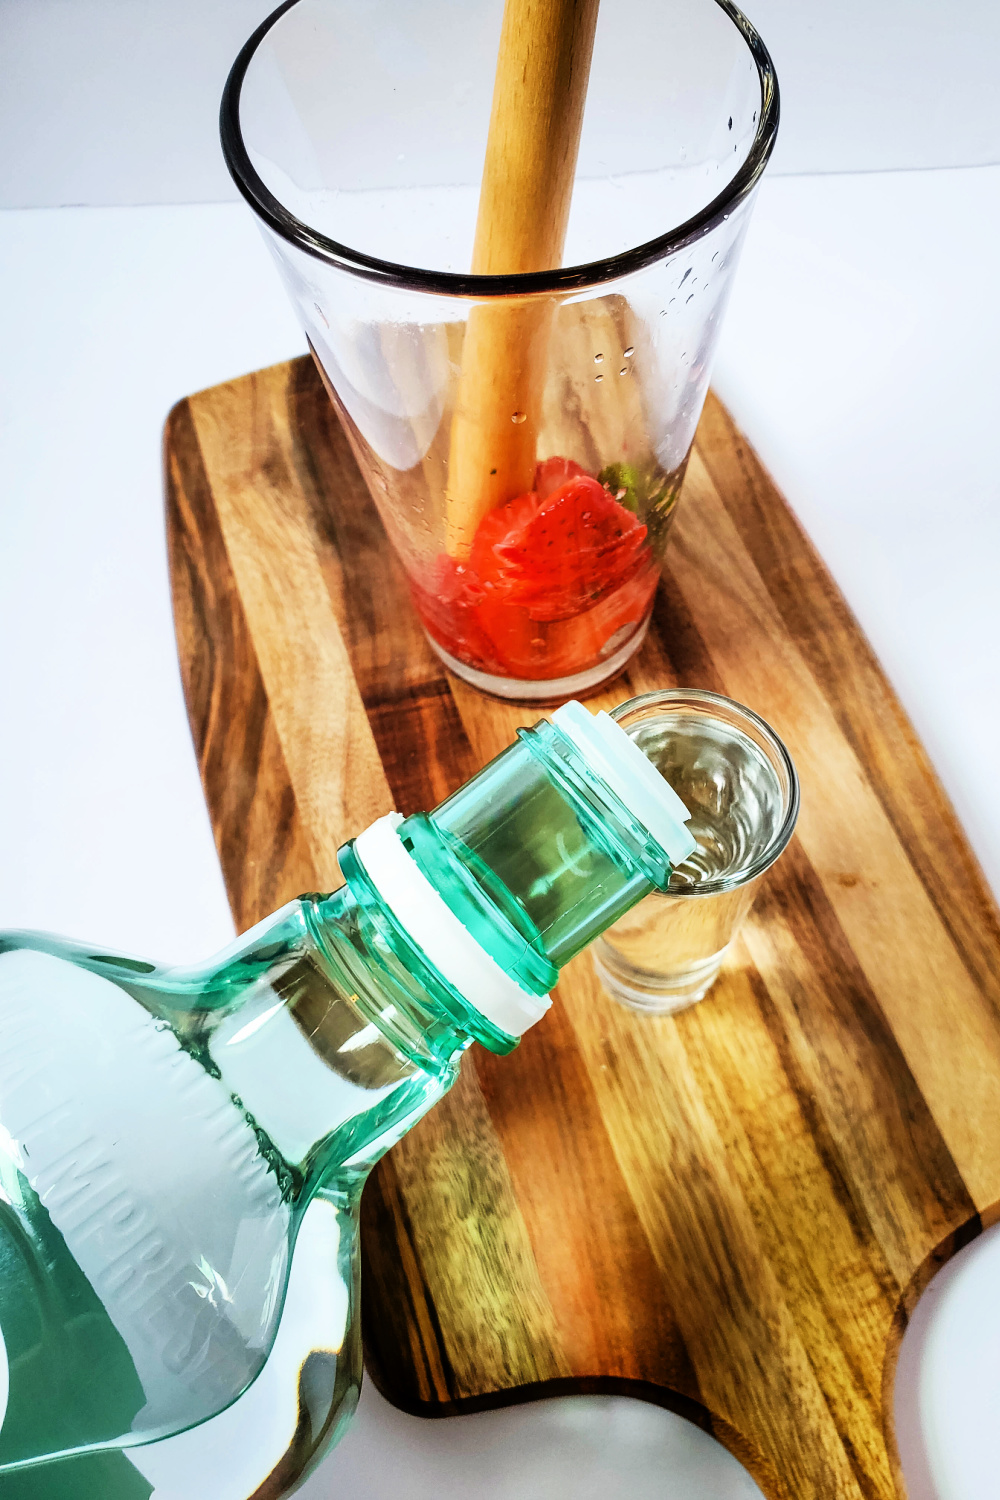 Strawberries and mint in a tall glass with a muddle sitting on a cutting board. Rum is being poured into a shot glass to add to the cocktail.